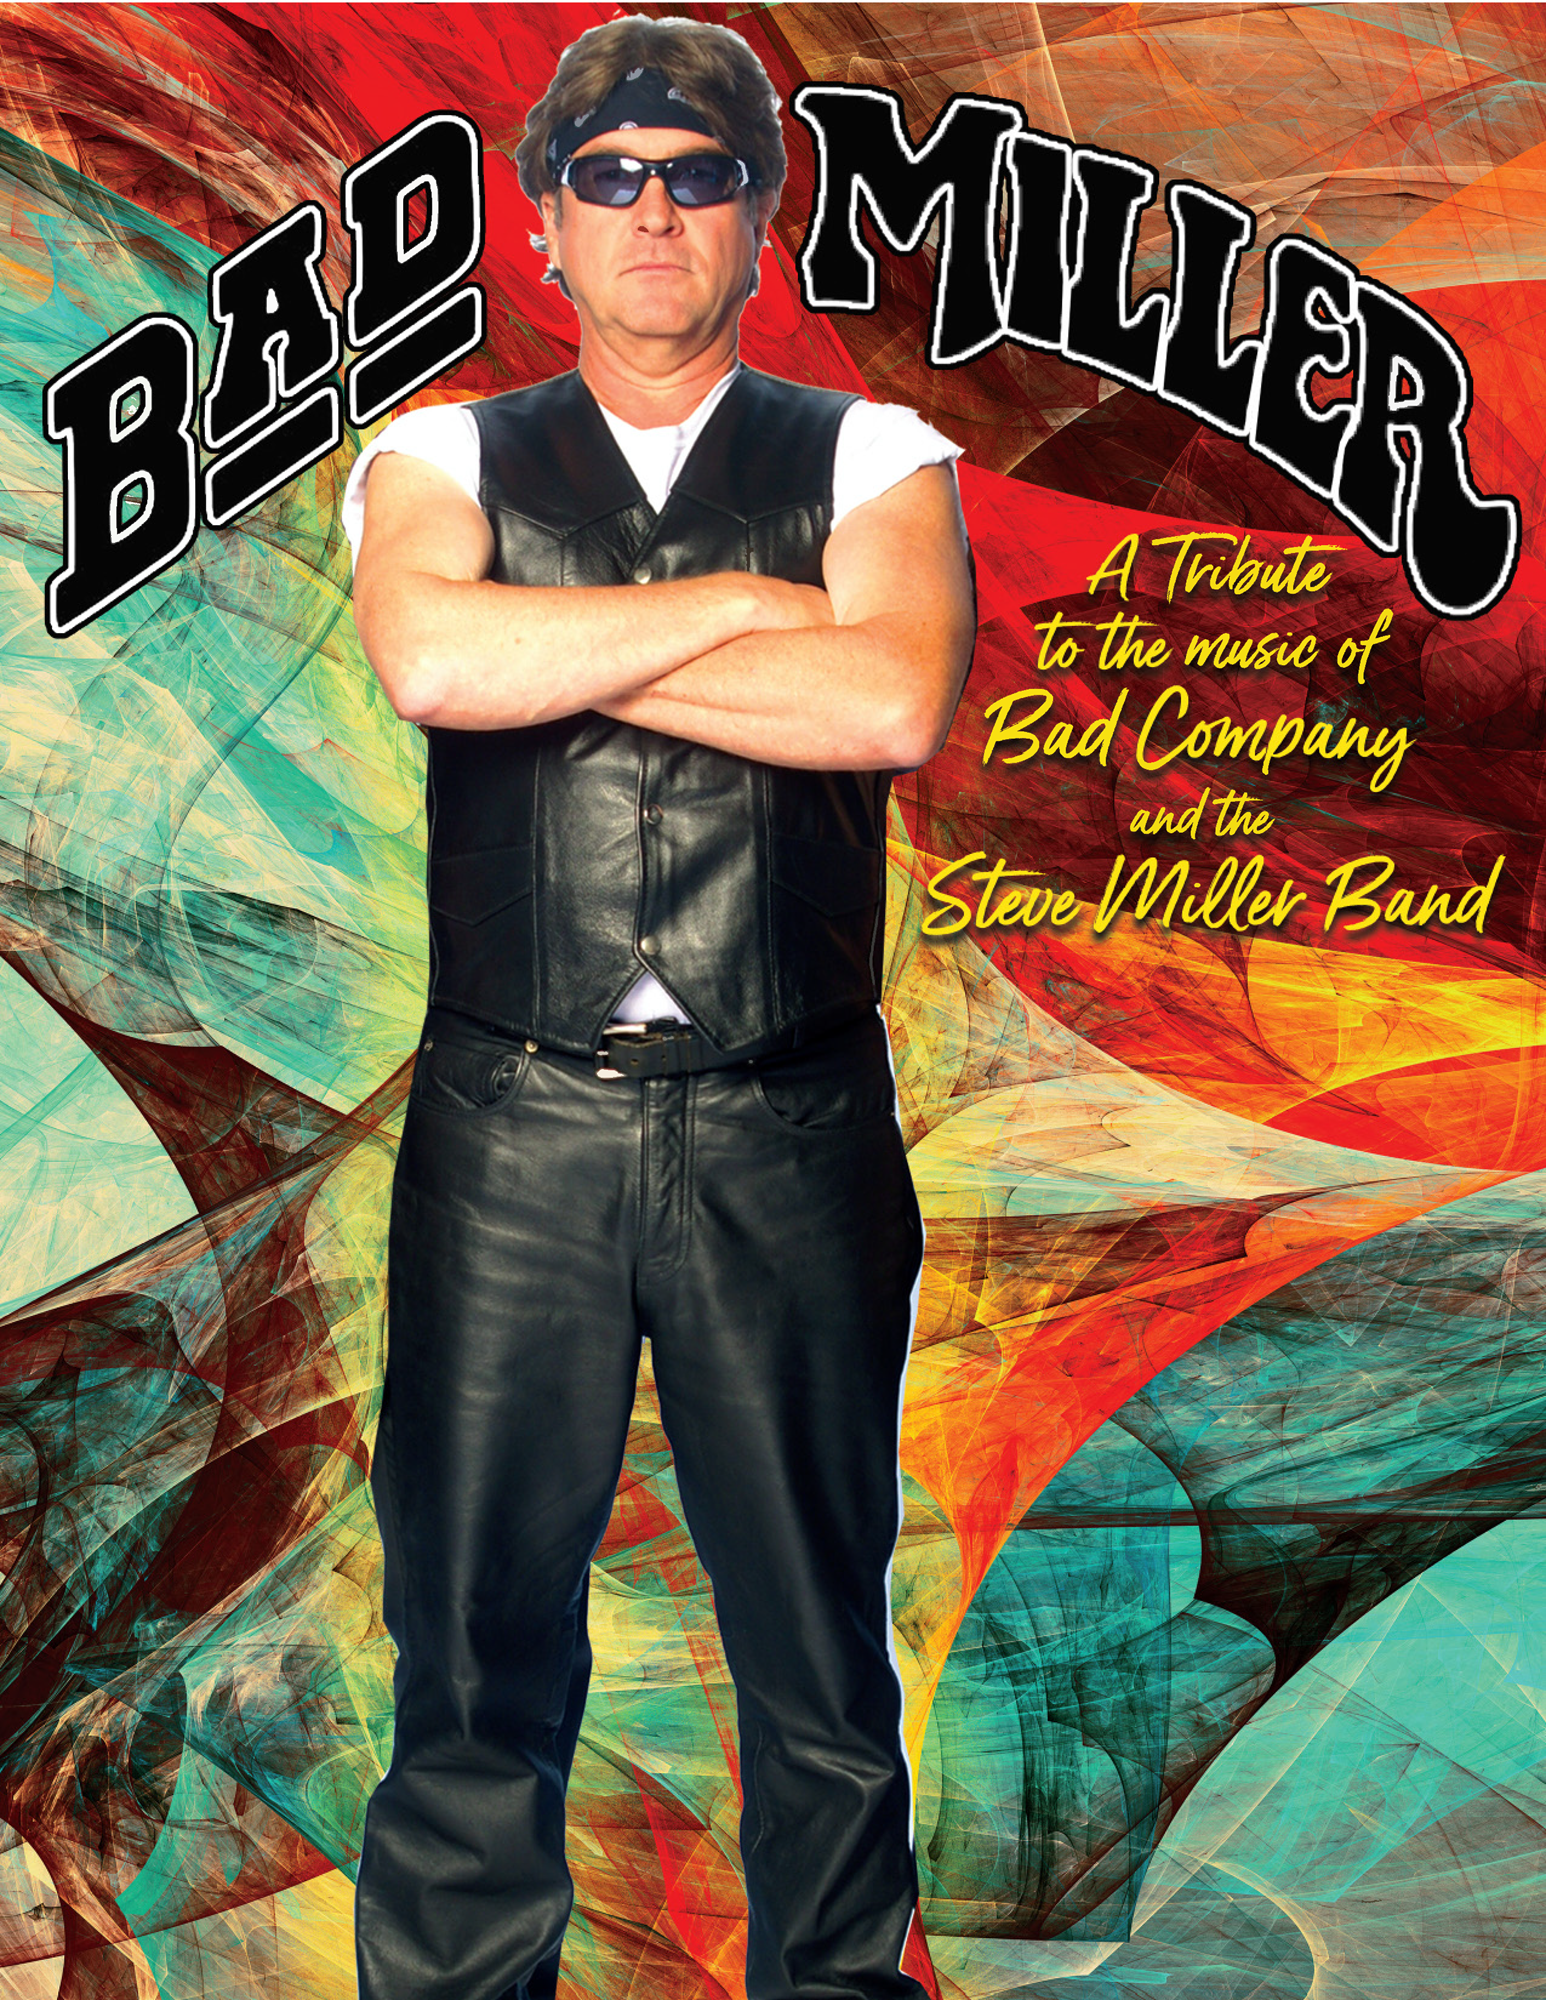 Bad Miller: A Tribute to Bad Company and the Steve Miller Band